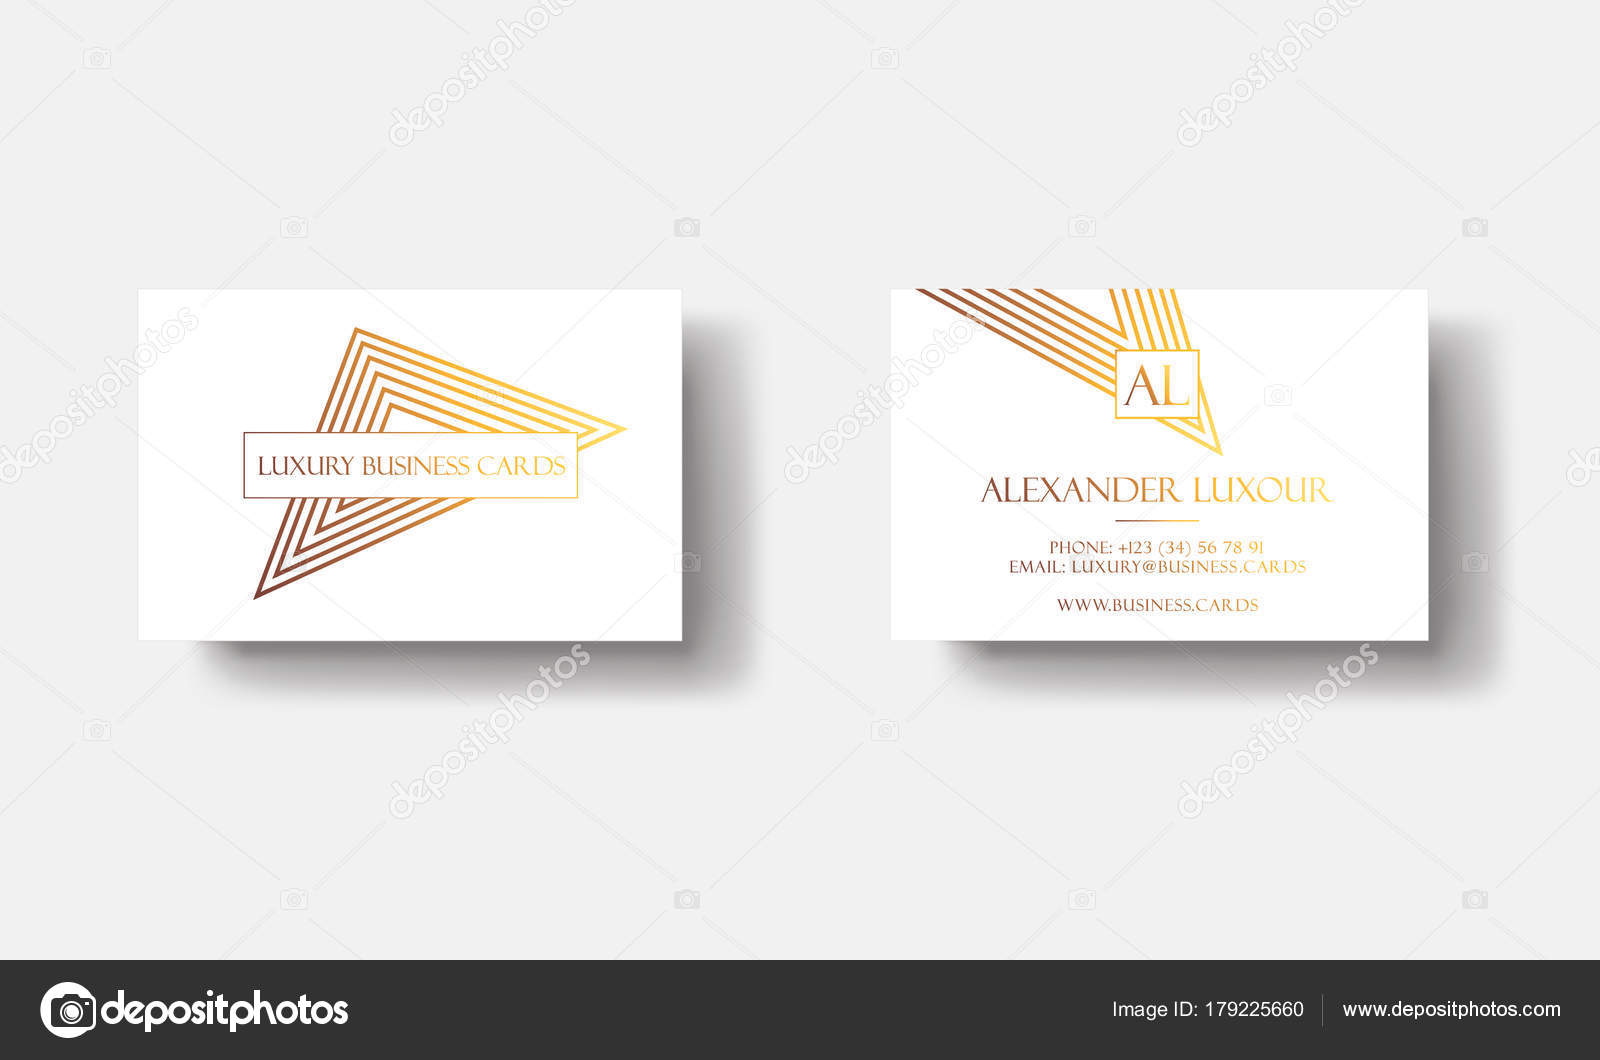 White Gold Luxury Business Cards For VIP Event Elegant Greeting Card With Golden Triangular Geometric